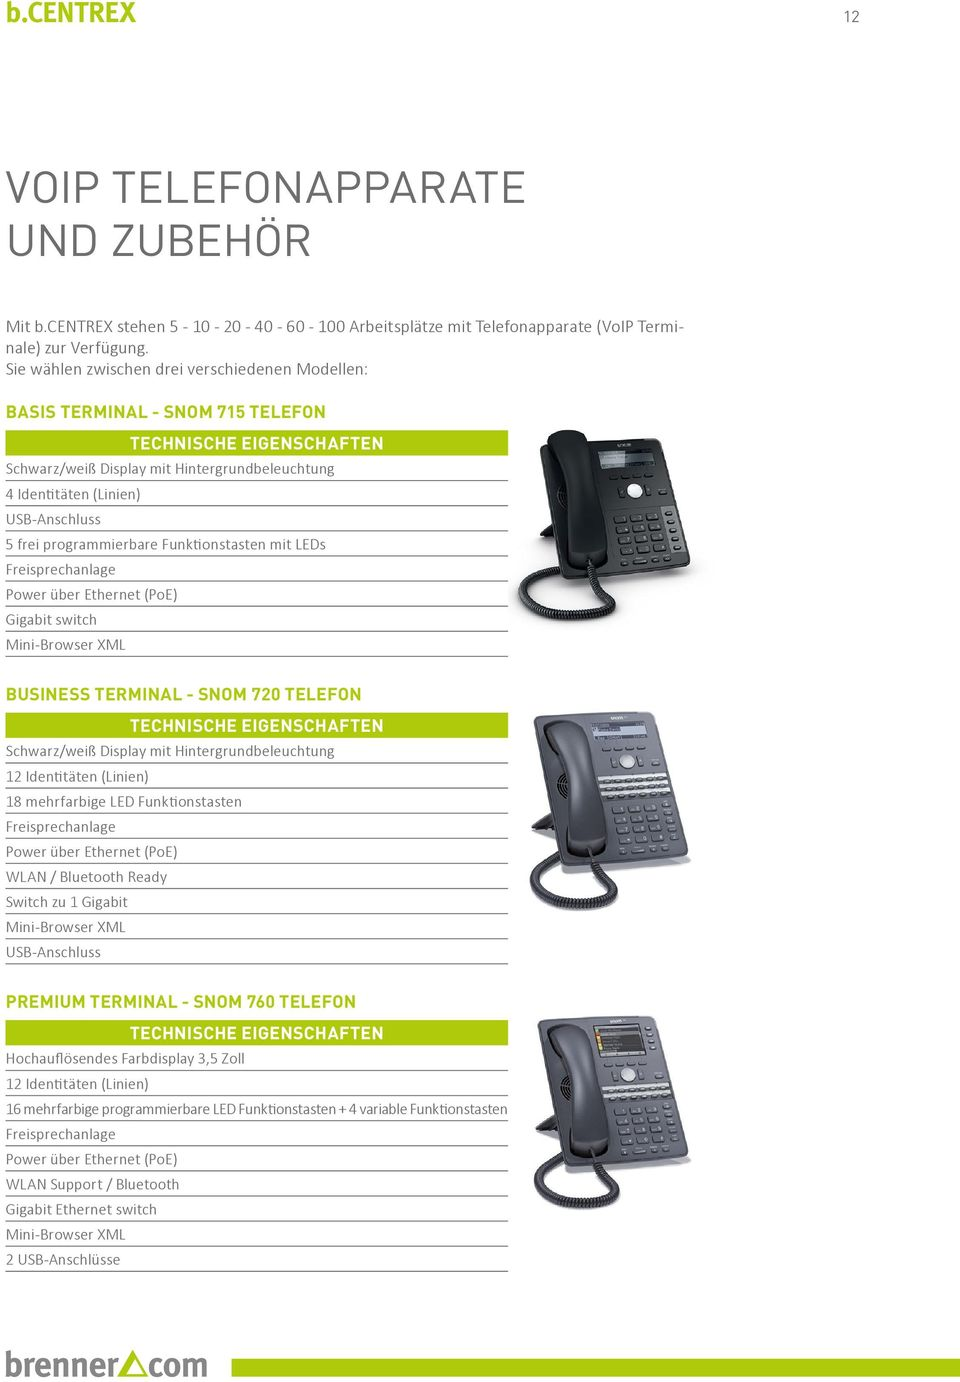 programmierbare Funktionstasten mit LEDs Freisprechanlage Power über Ethernet (PoE) Gigabit switch Mini-Browser XML BUSINESS TERMINAL - SNOM 720 TELEFON TECHNISCHE EIGENSCHAFTEN Schwarz/weiß Display